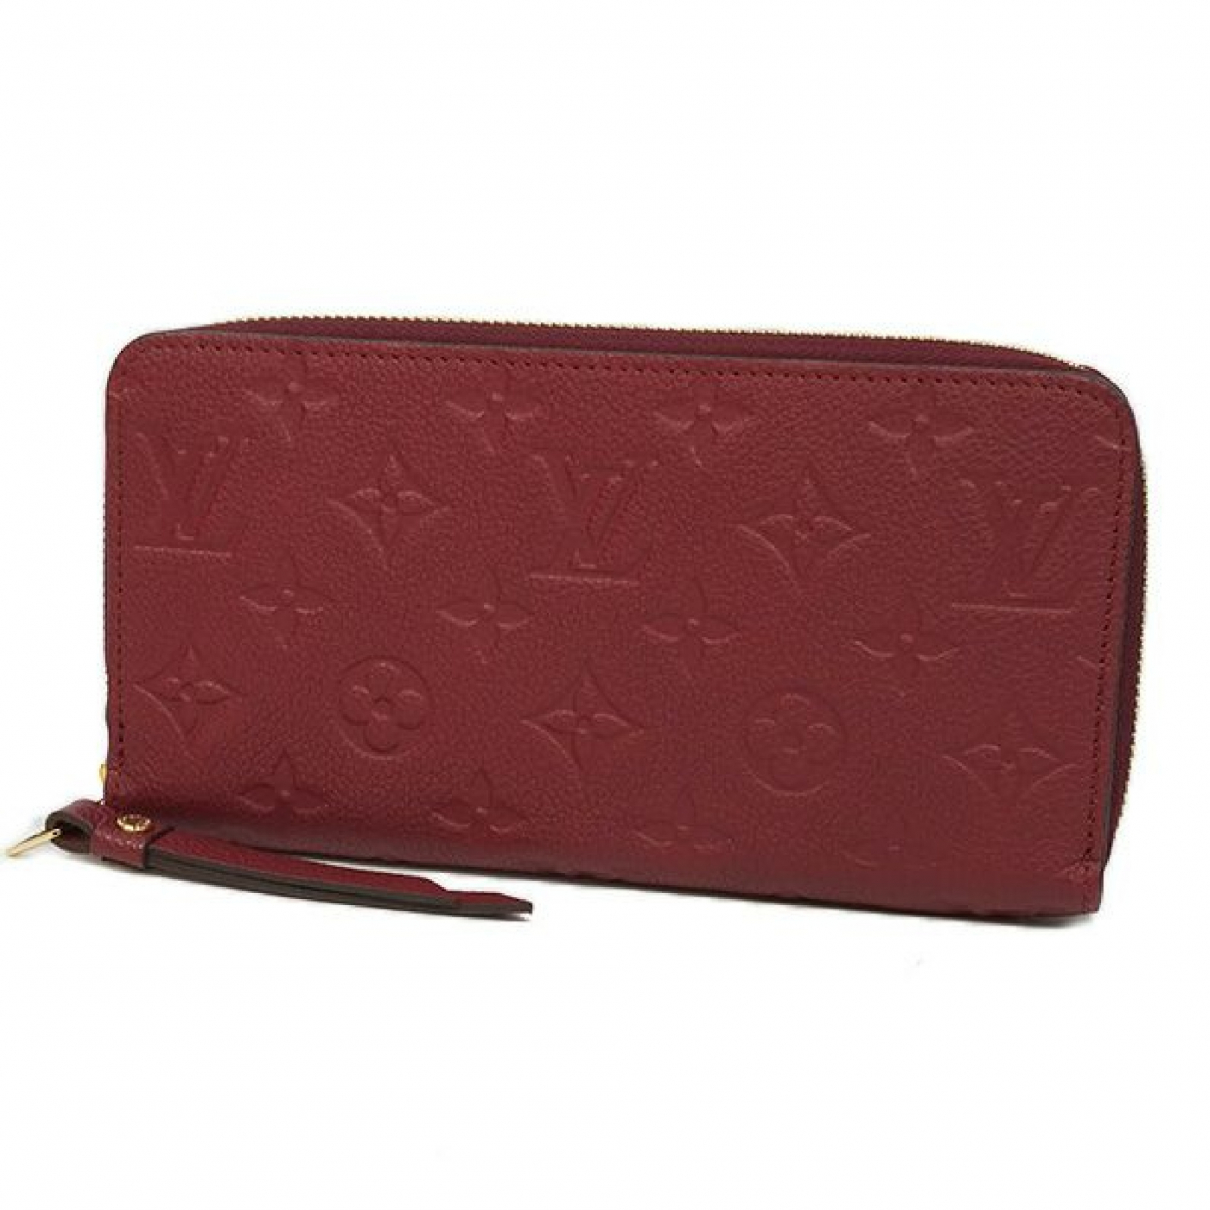 Cartera de Lona Louis Vuitton